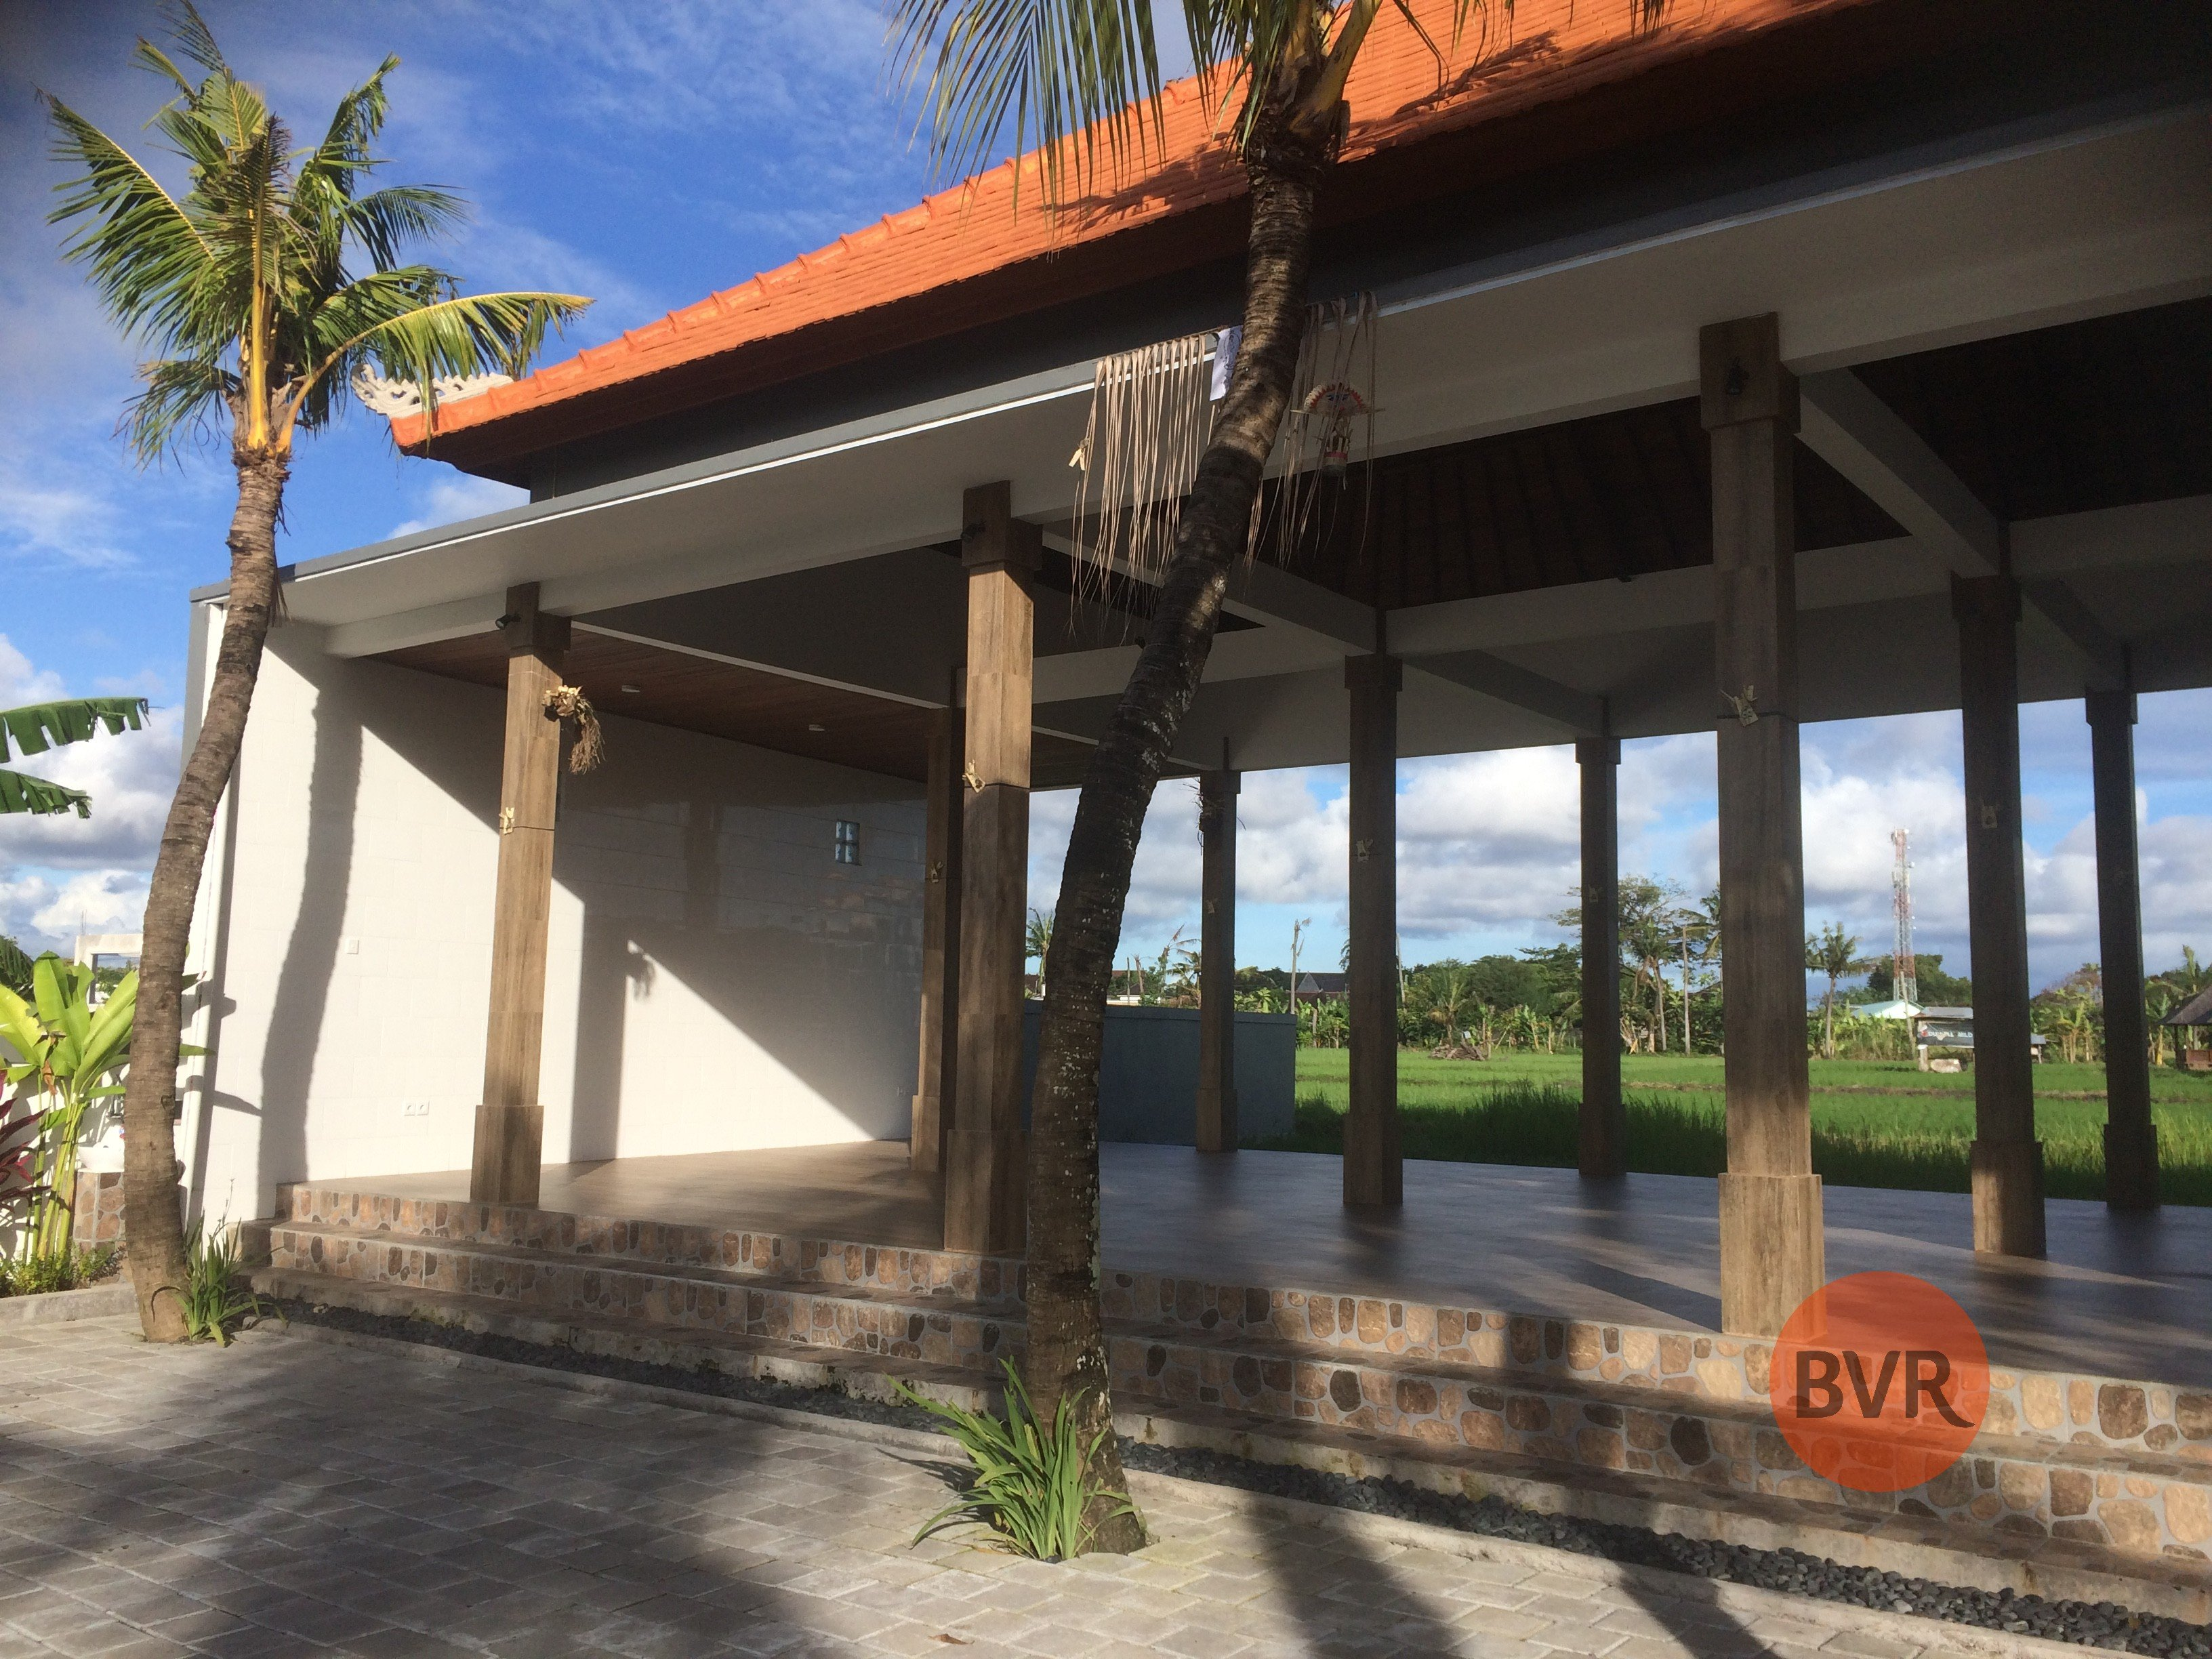 COMMERCIAL SPACE WITH RICE FIELD VIEWS FOR SALE IN UMALAS